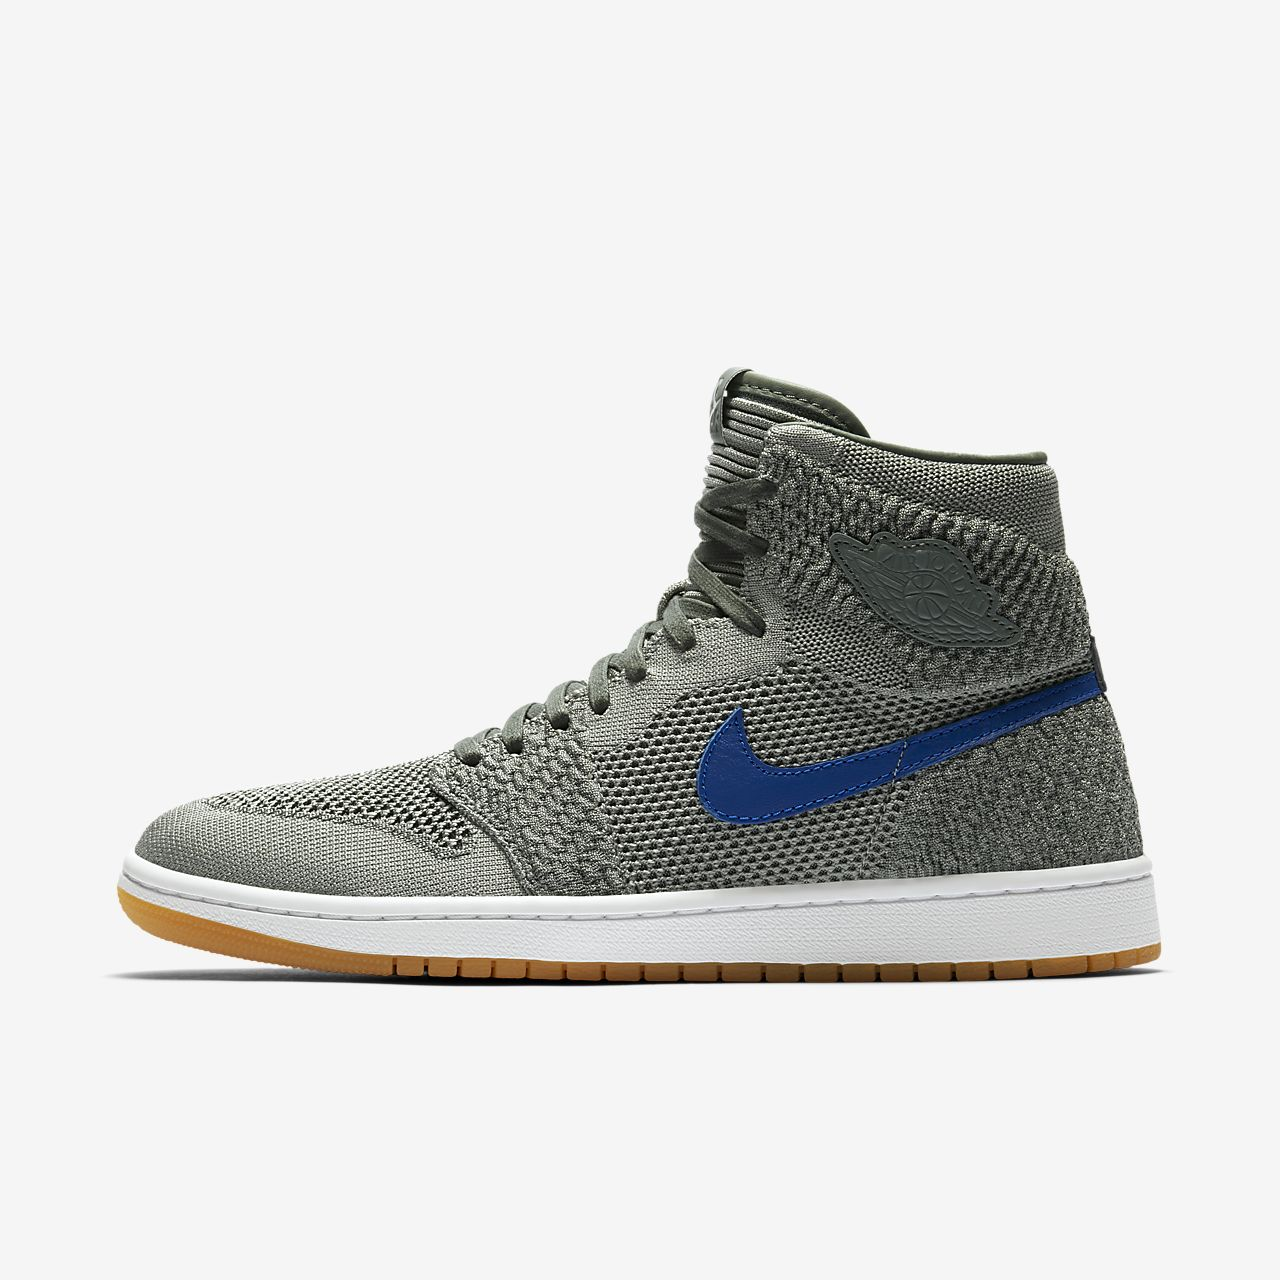 Nike Air Jordan 1 High Flyknit Black/blue Sz 10.5